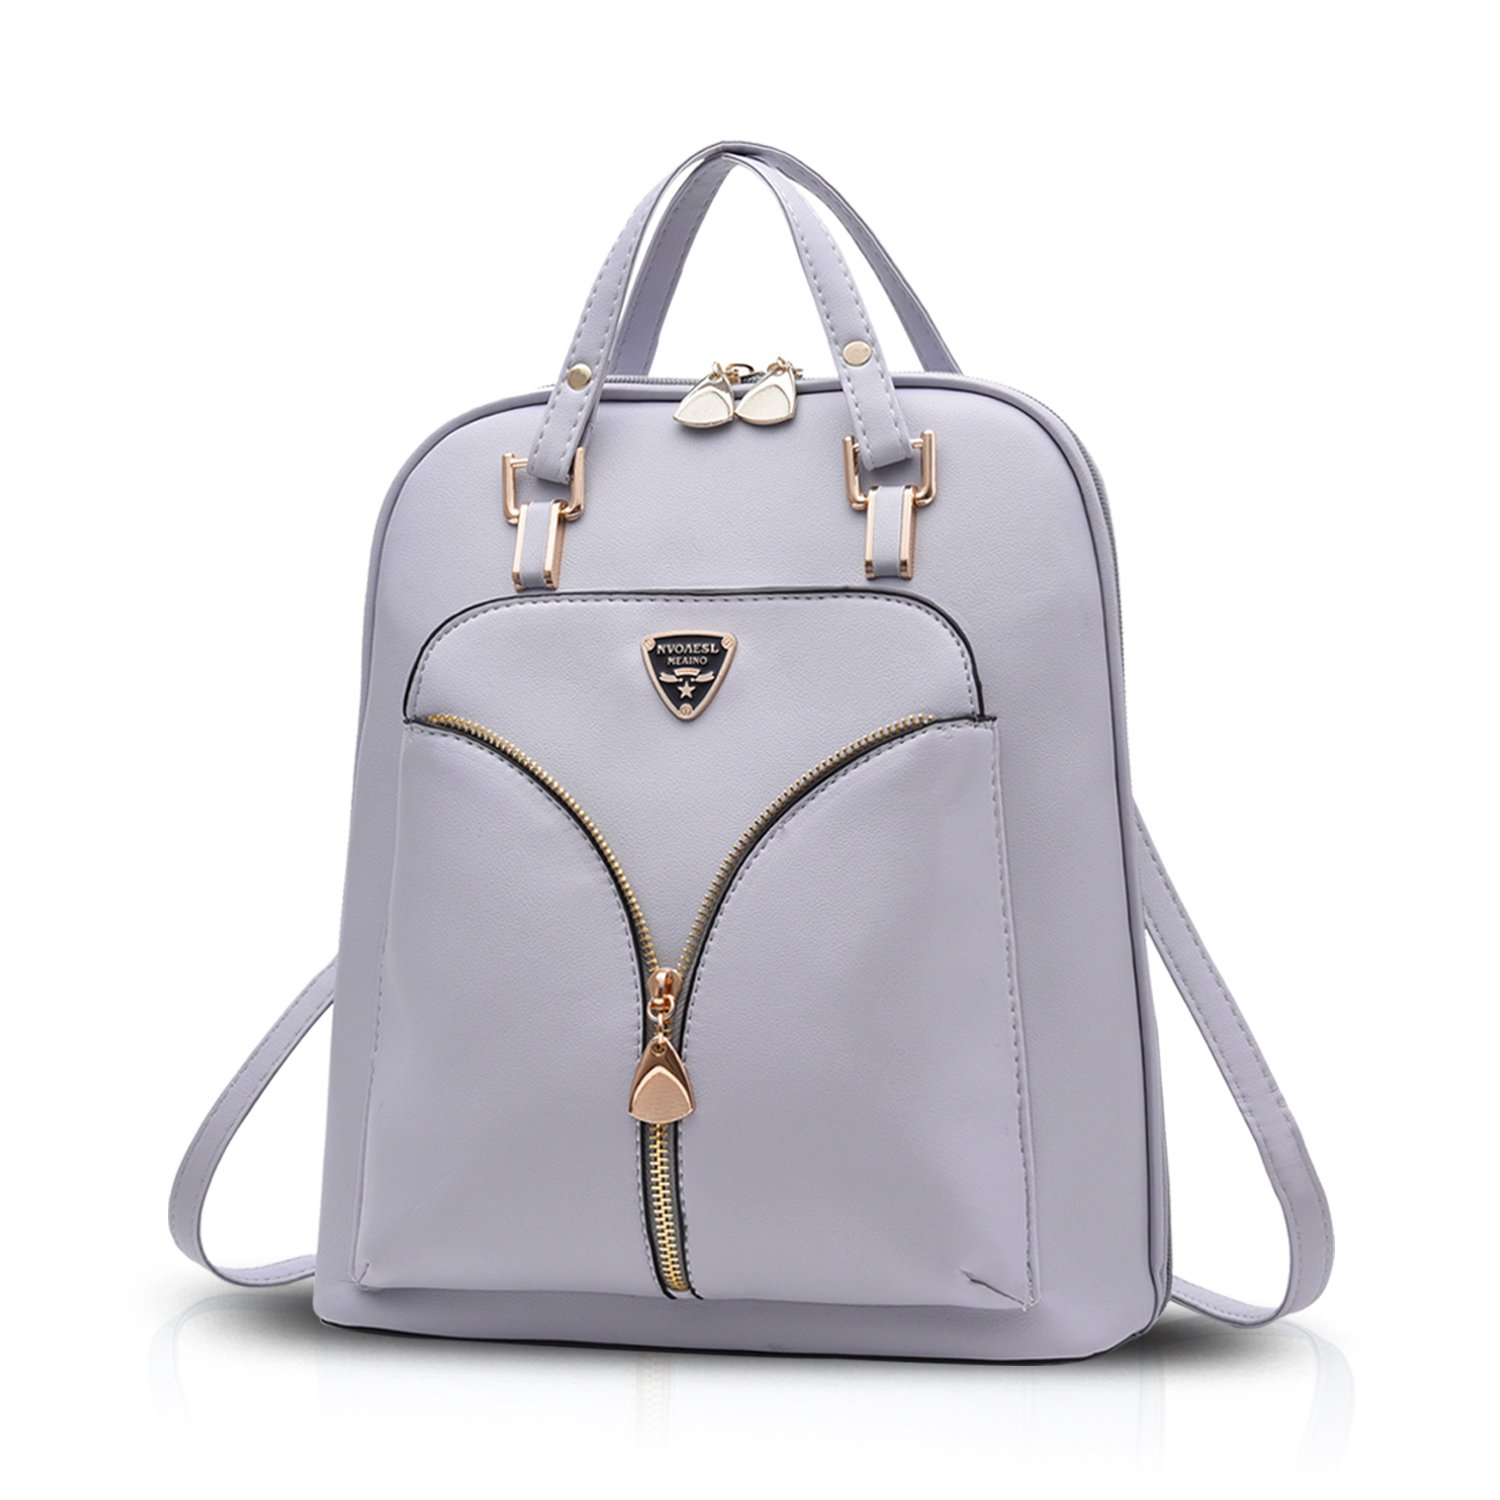 Sunas 2017 New Shoulder Bag Women's Bag PU Student Fashion Tide Bag Personalized Leisure Travel Dual Purpose Backpack (Gray)